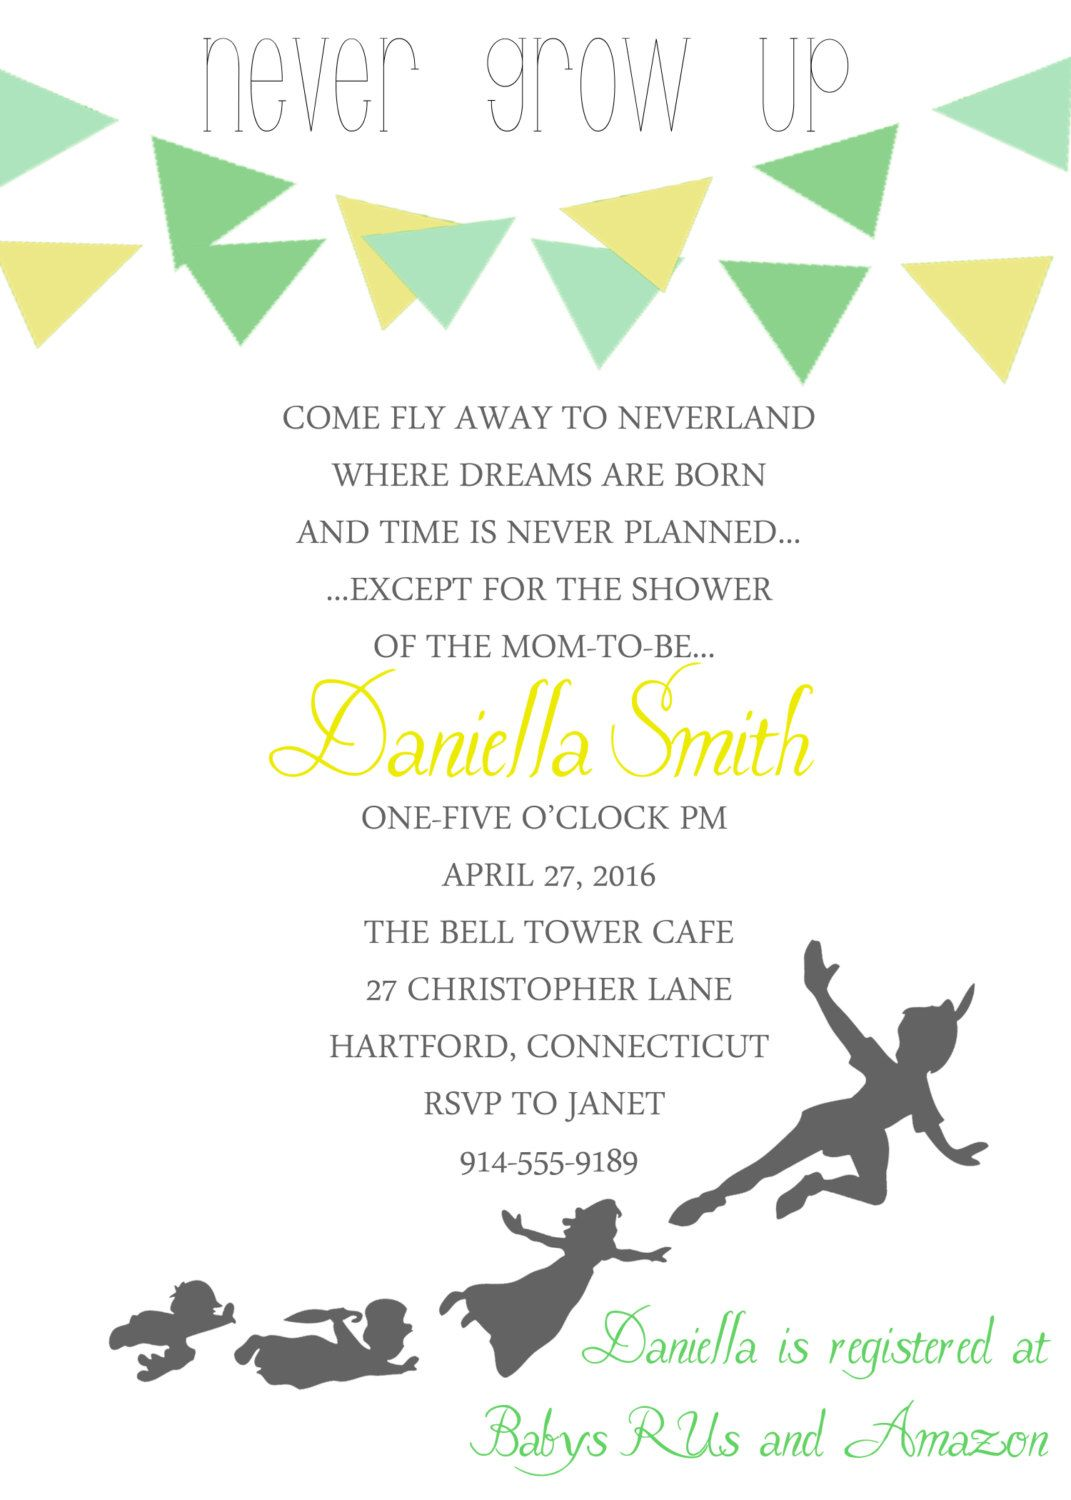 Peter pan baby shower invitation pdf only at this time by peter pan baby shower invitation pdf only at this time by adazzlingplace on etsy httpsetsylisting218812751peter pan baby shower invitation filmwisefo